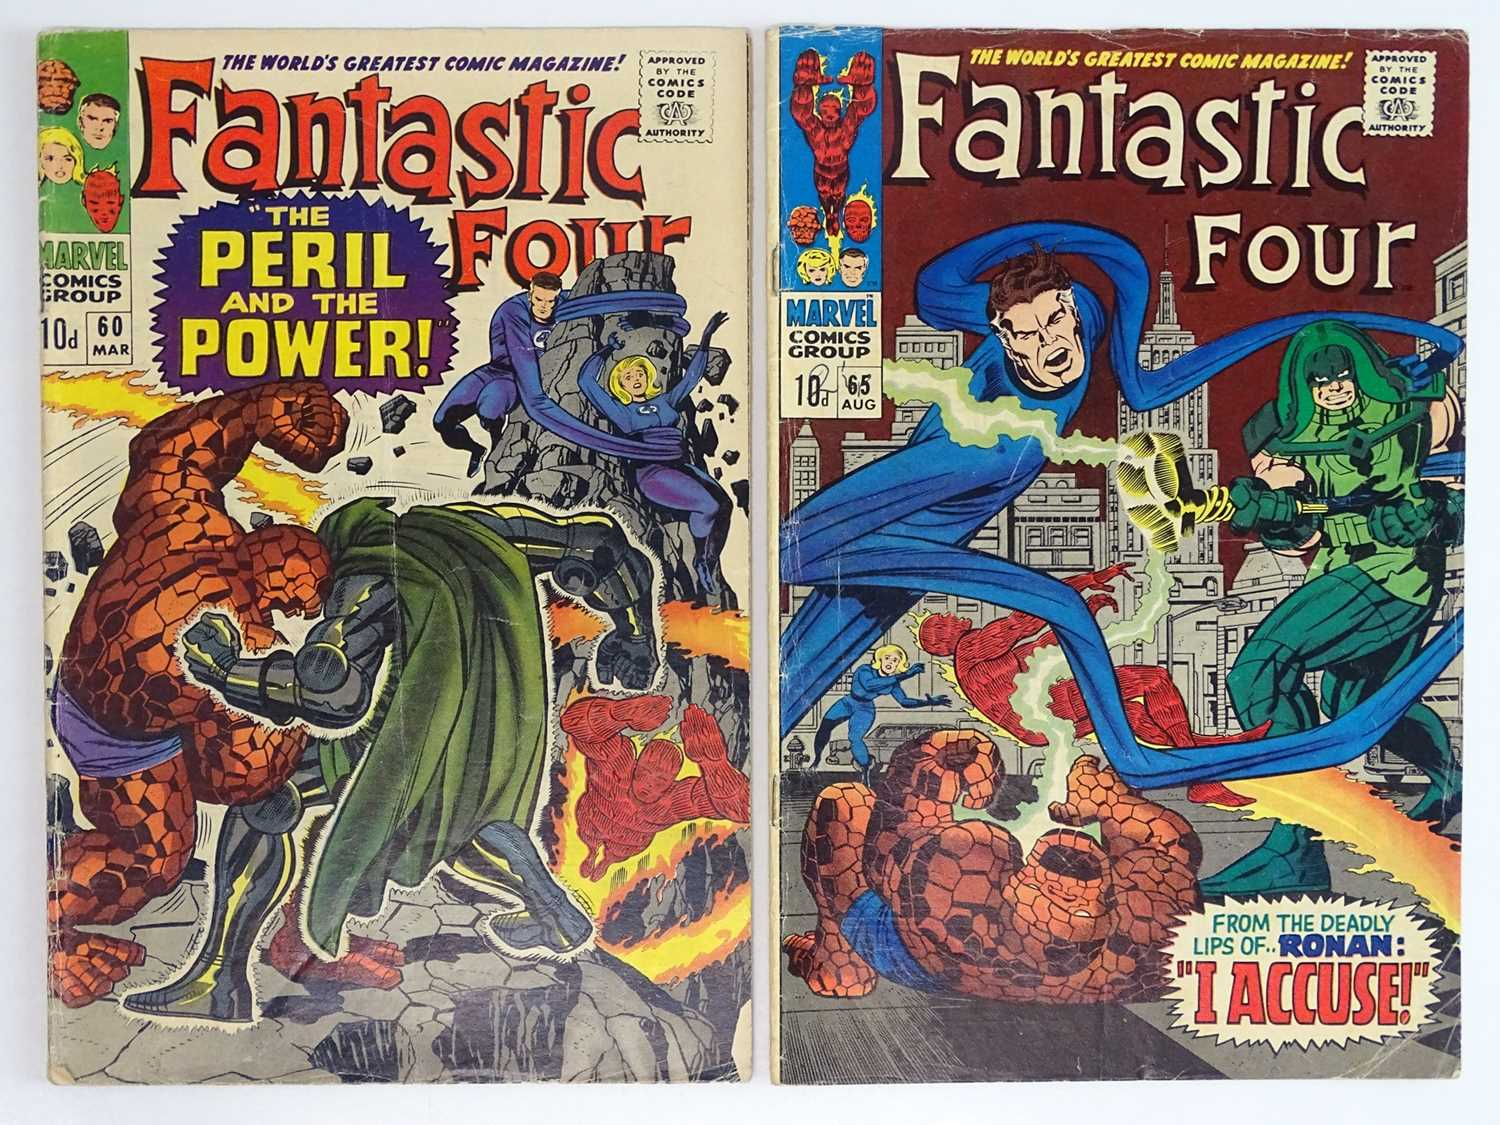 FANTASTIC FOUR #60 & 65 - (2 in Lot) - (1967 - MARVEL - UK Price Variant) - Includes First